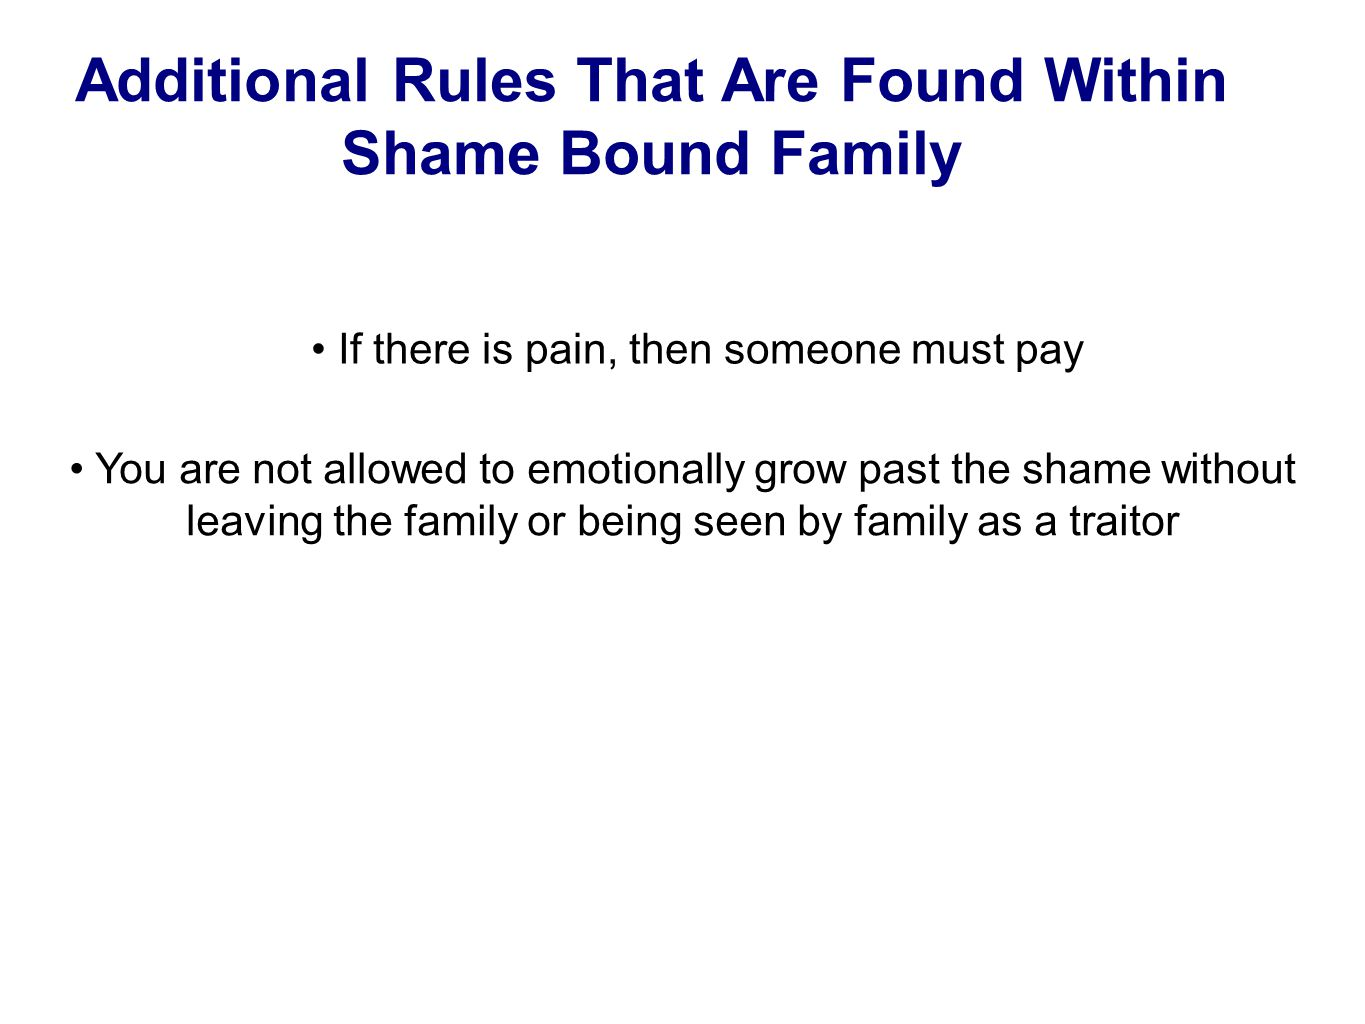 Additional Rules That Are Found Within Shame Bound Family If there is pain, then someone must pay You are not allowed to emotionally grow past the sha